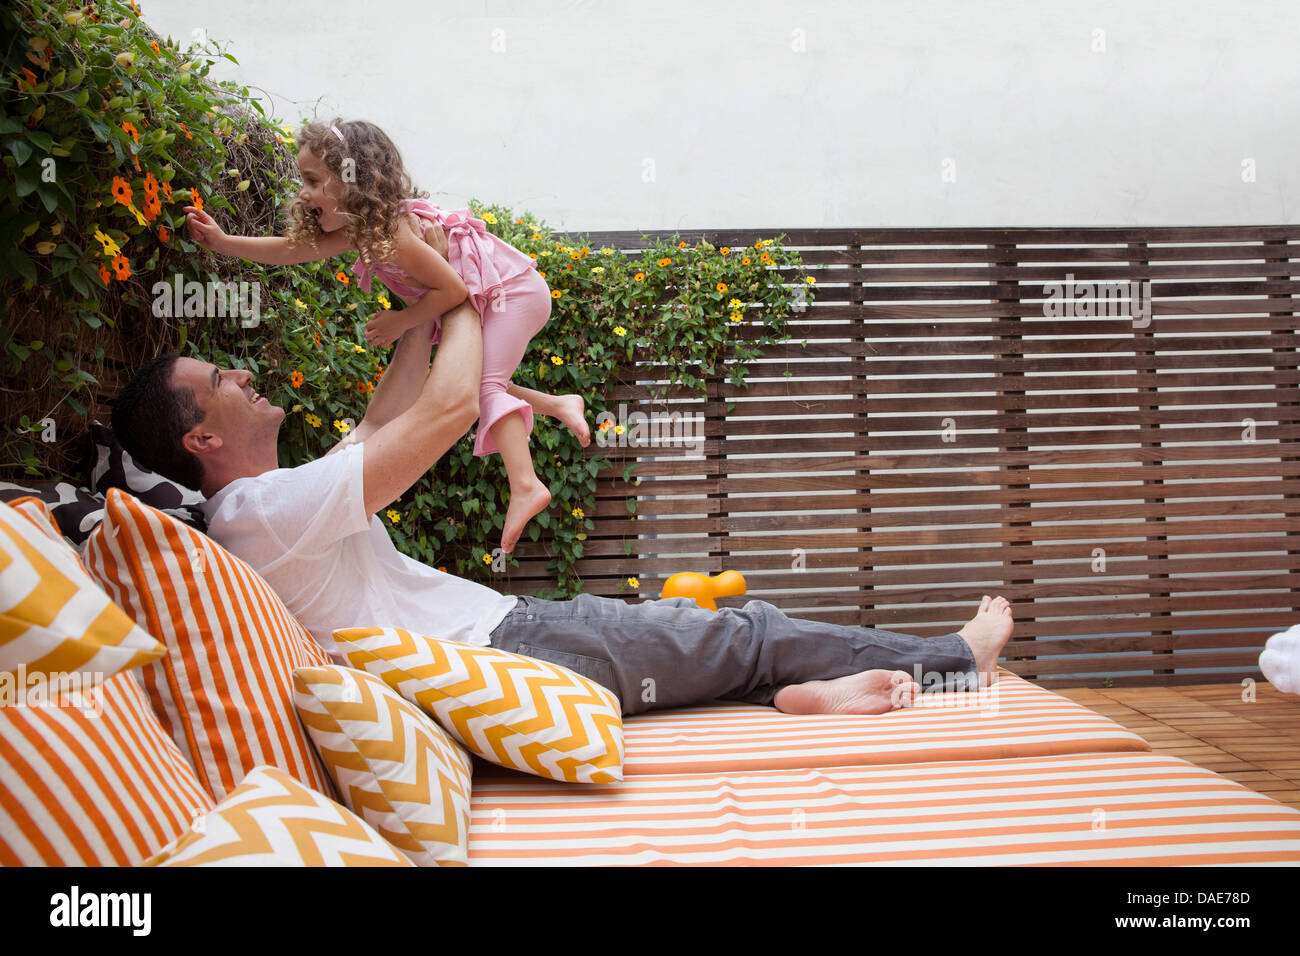 Father lifting daughter in the air - Stock Image